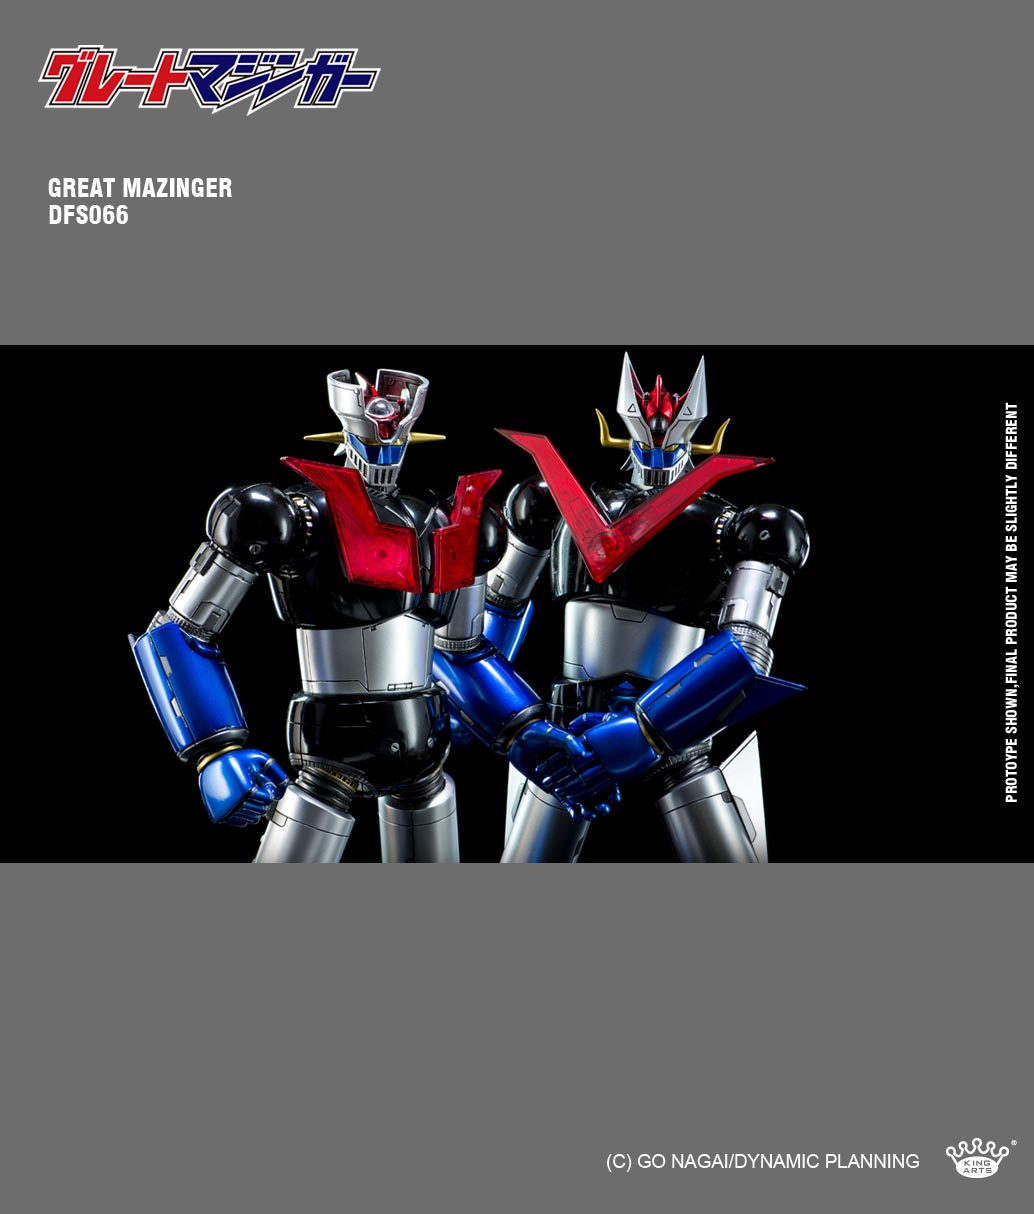 King Arts - DFS066 - Dynamic Planning - Diecast Action Great Mazinger